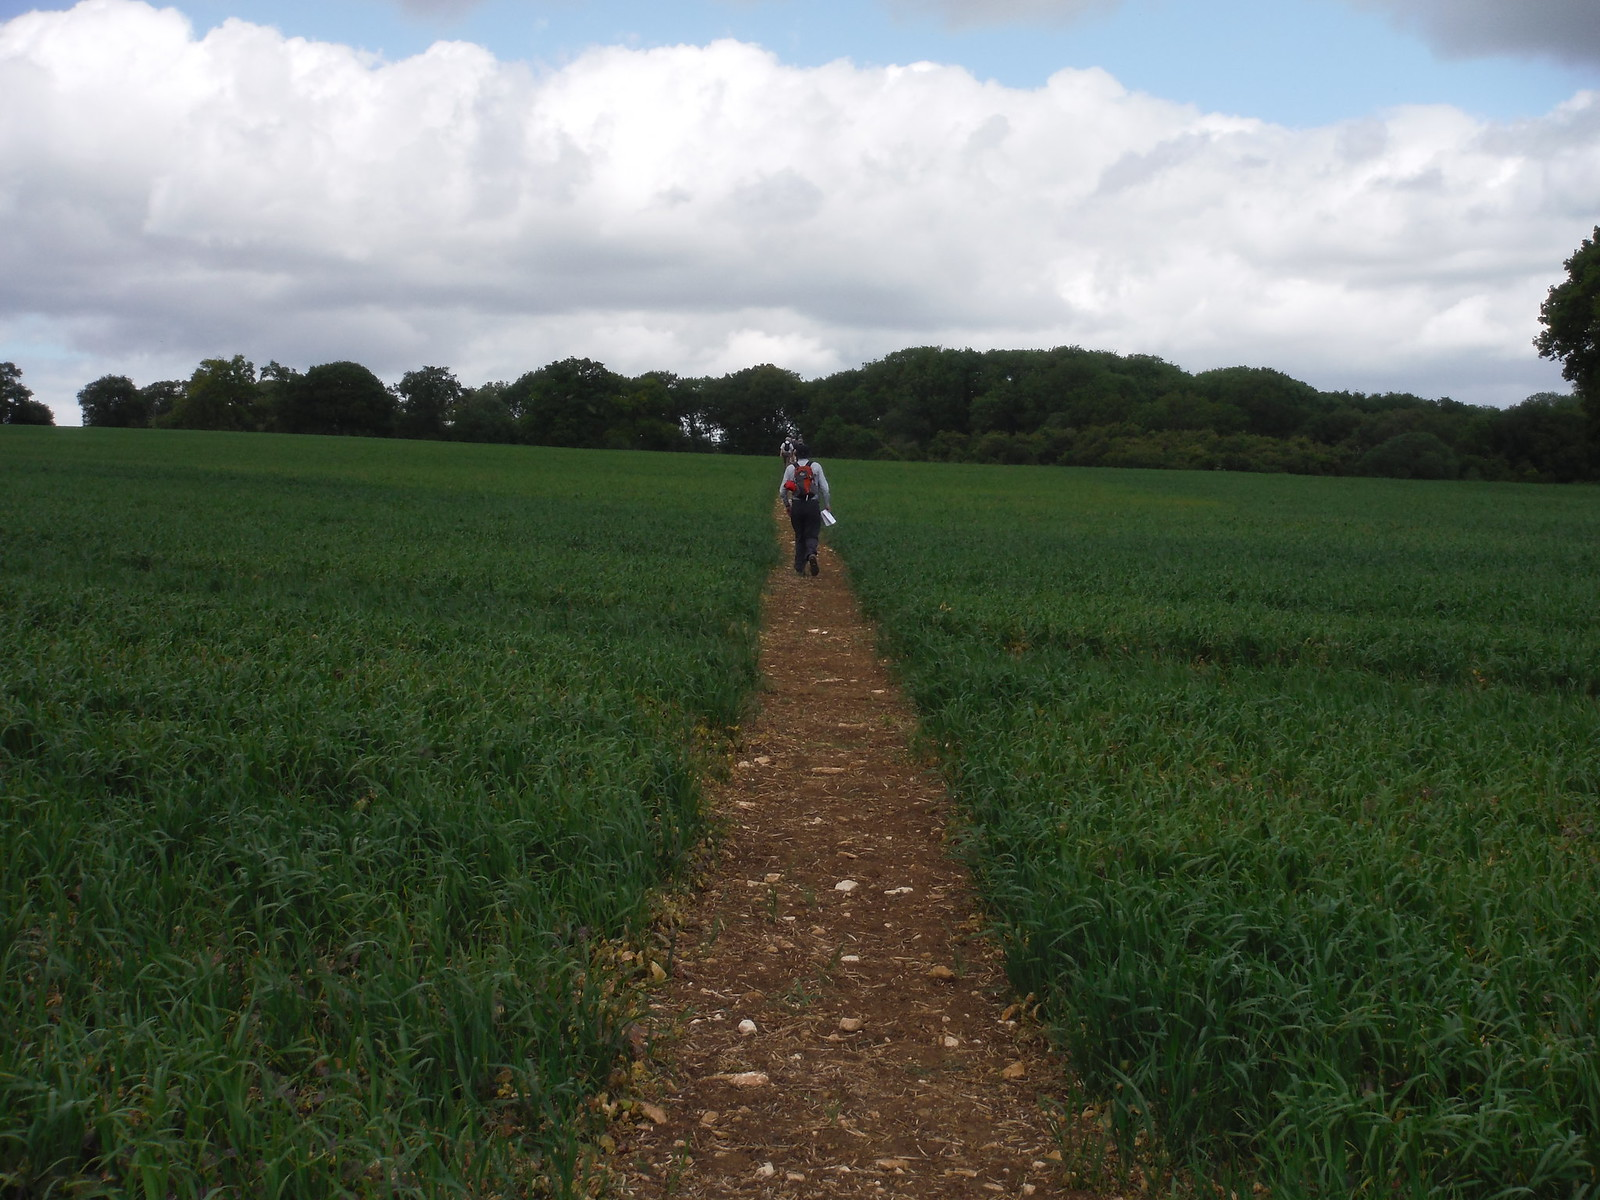 a usually well-cleared path across large field SWC Walk 249 Tisbury Circular via Dinton and Fovant